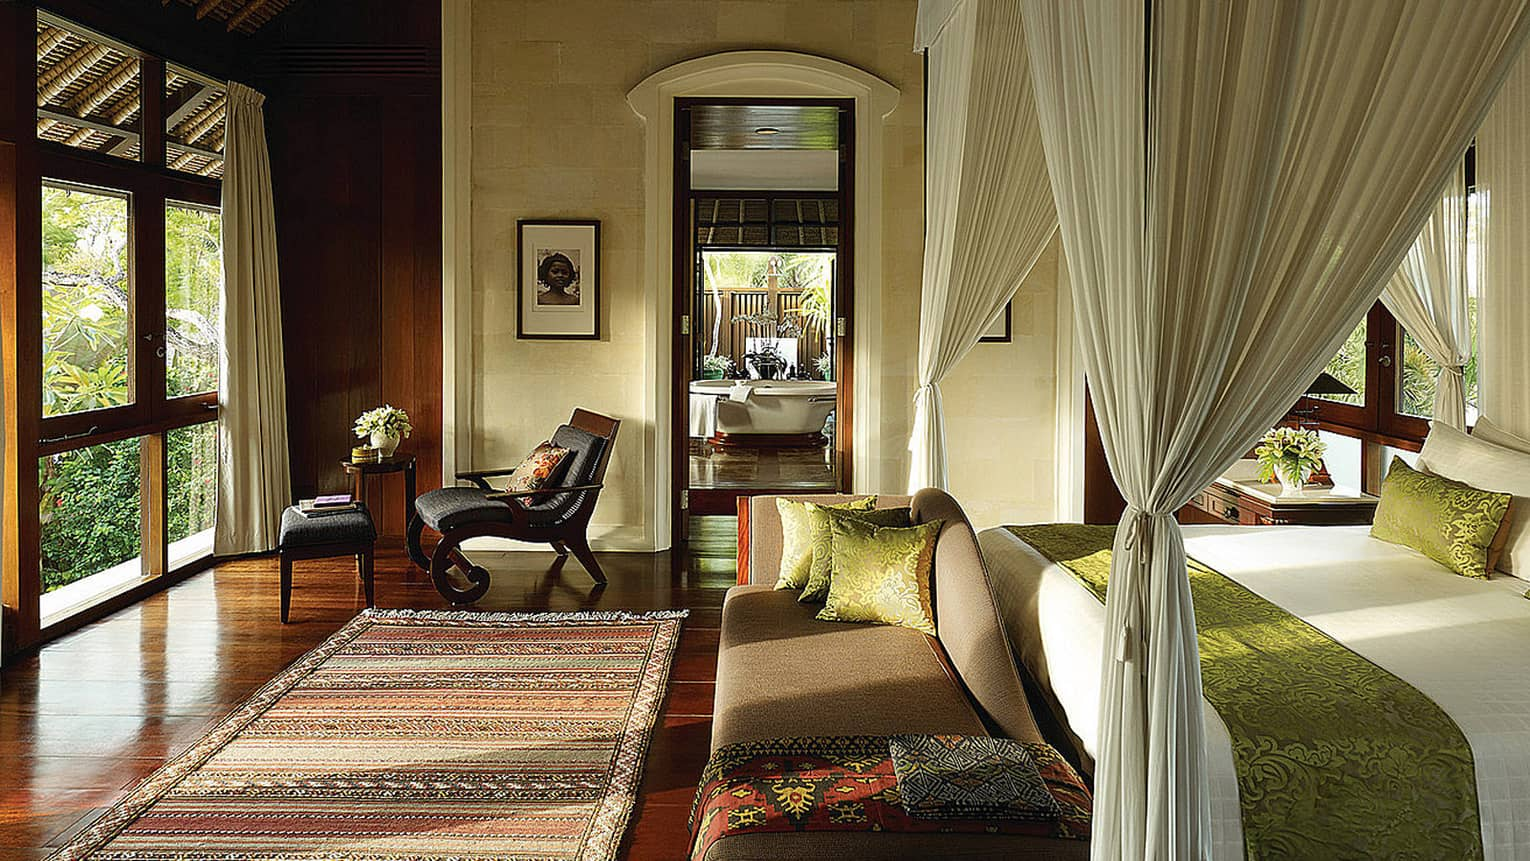 Sunlight coming in bedroom over Balinese rug, small chaise at foot of bed with velvet green sash, white curtains